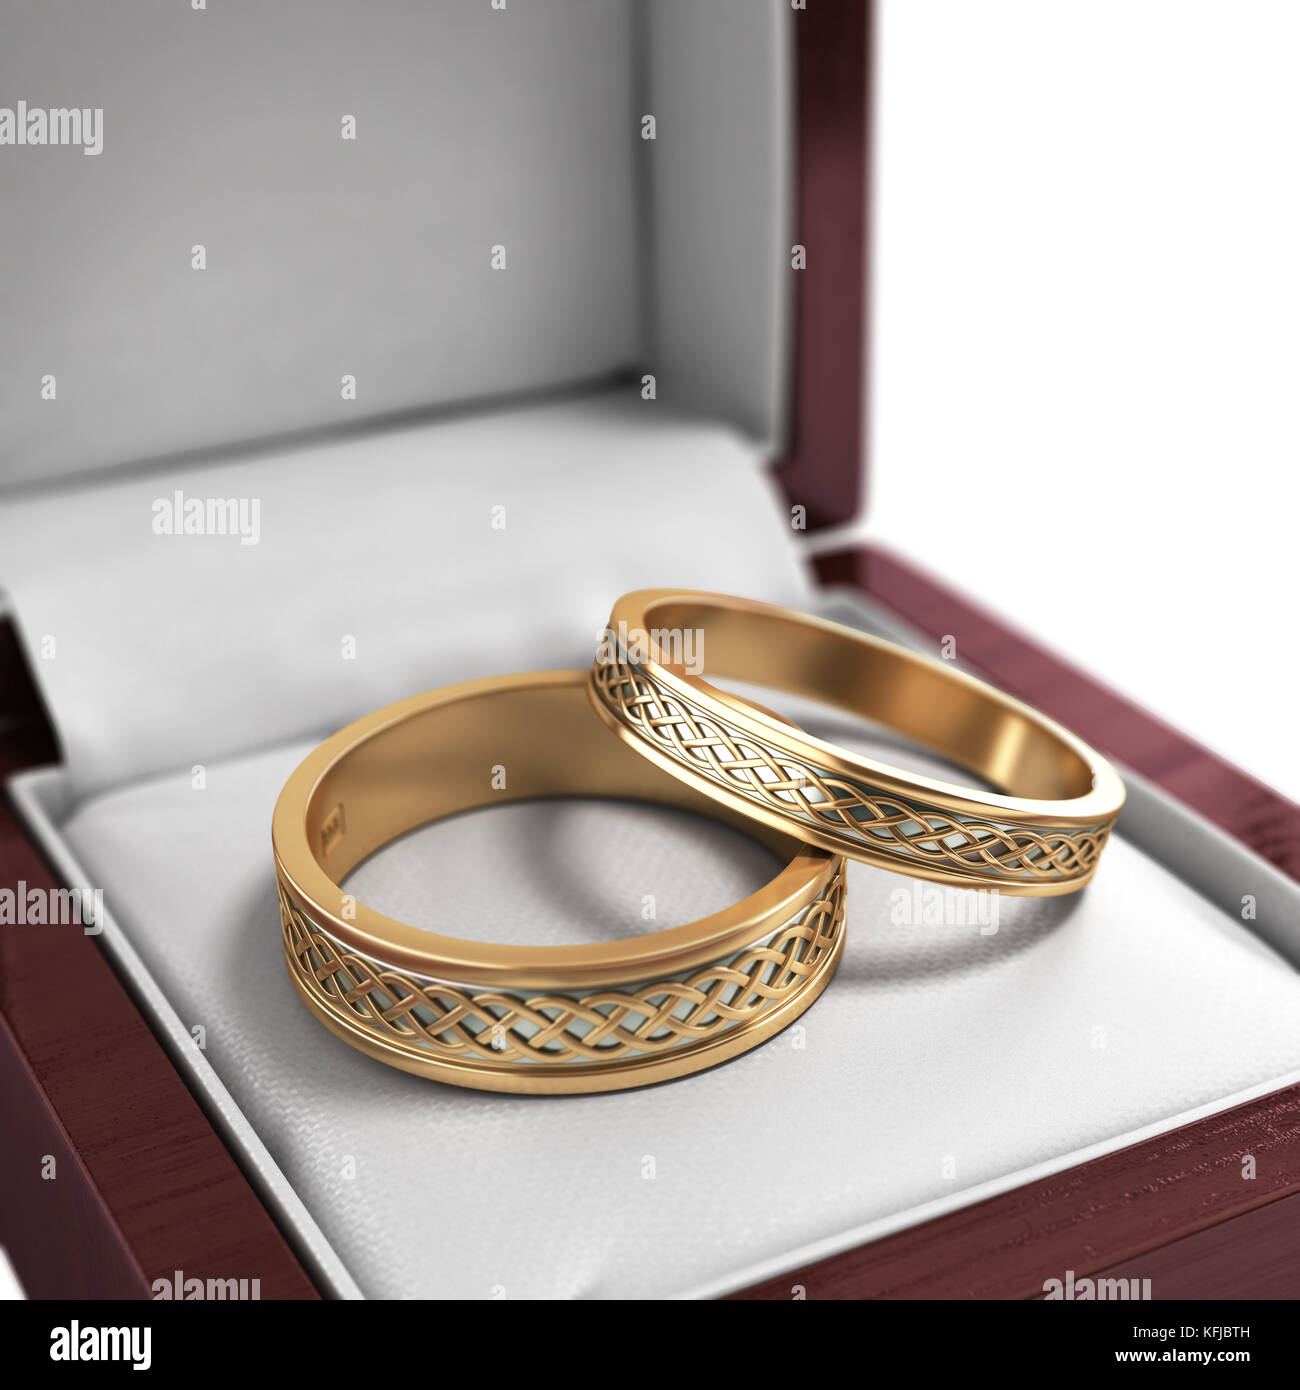 Wedding Bands Rings In The Red Box Jewelry Preparation 3d Render: Red Wedding Ring Box At Reisefeber.org